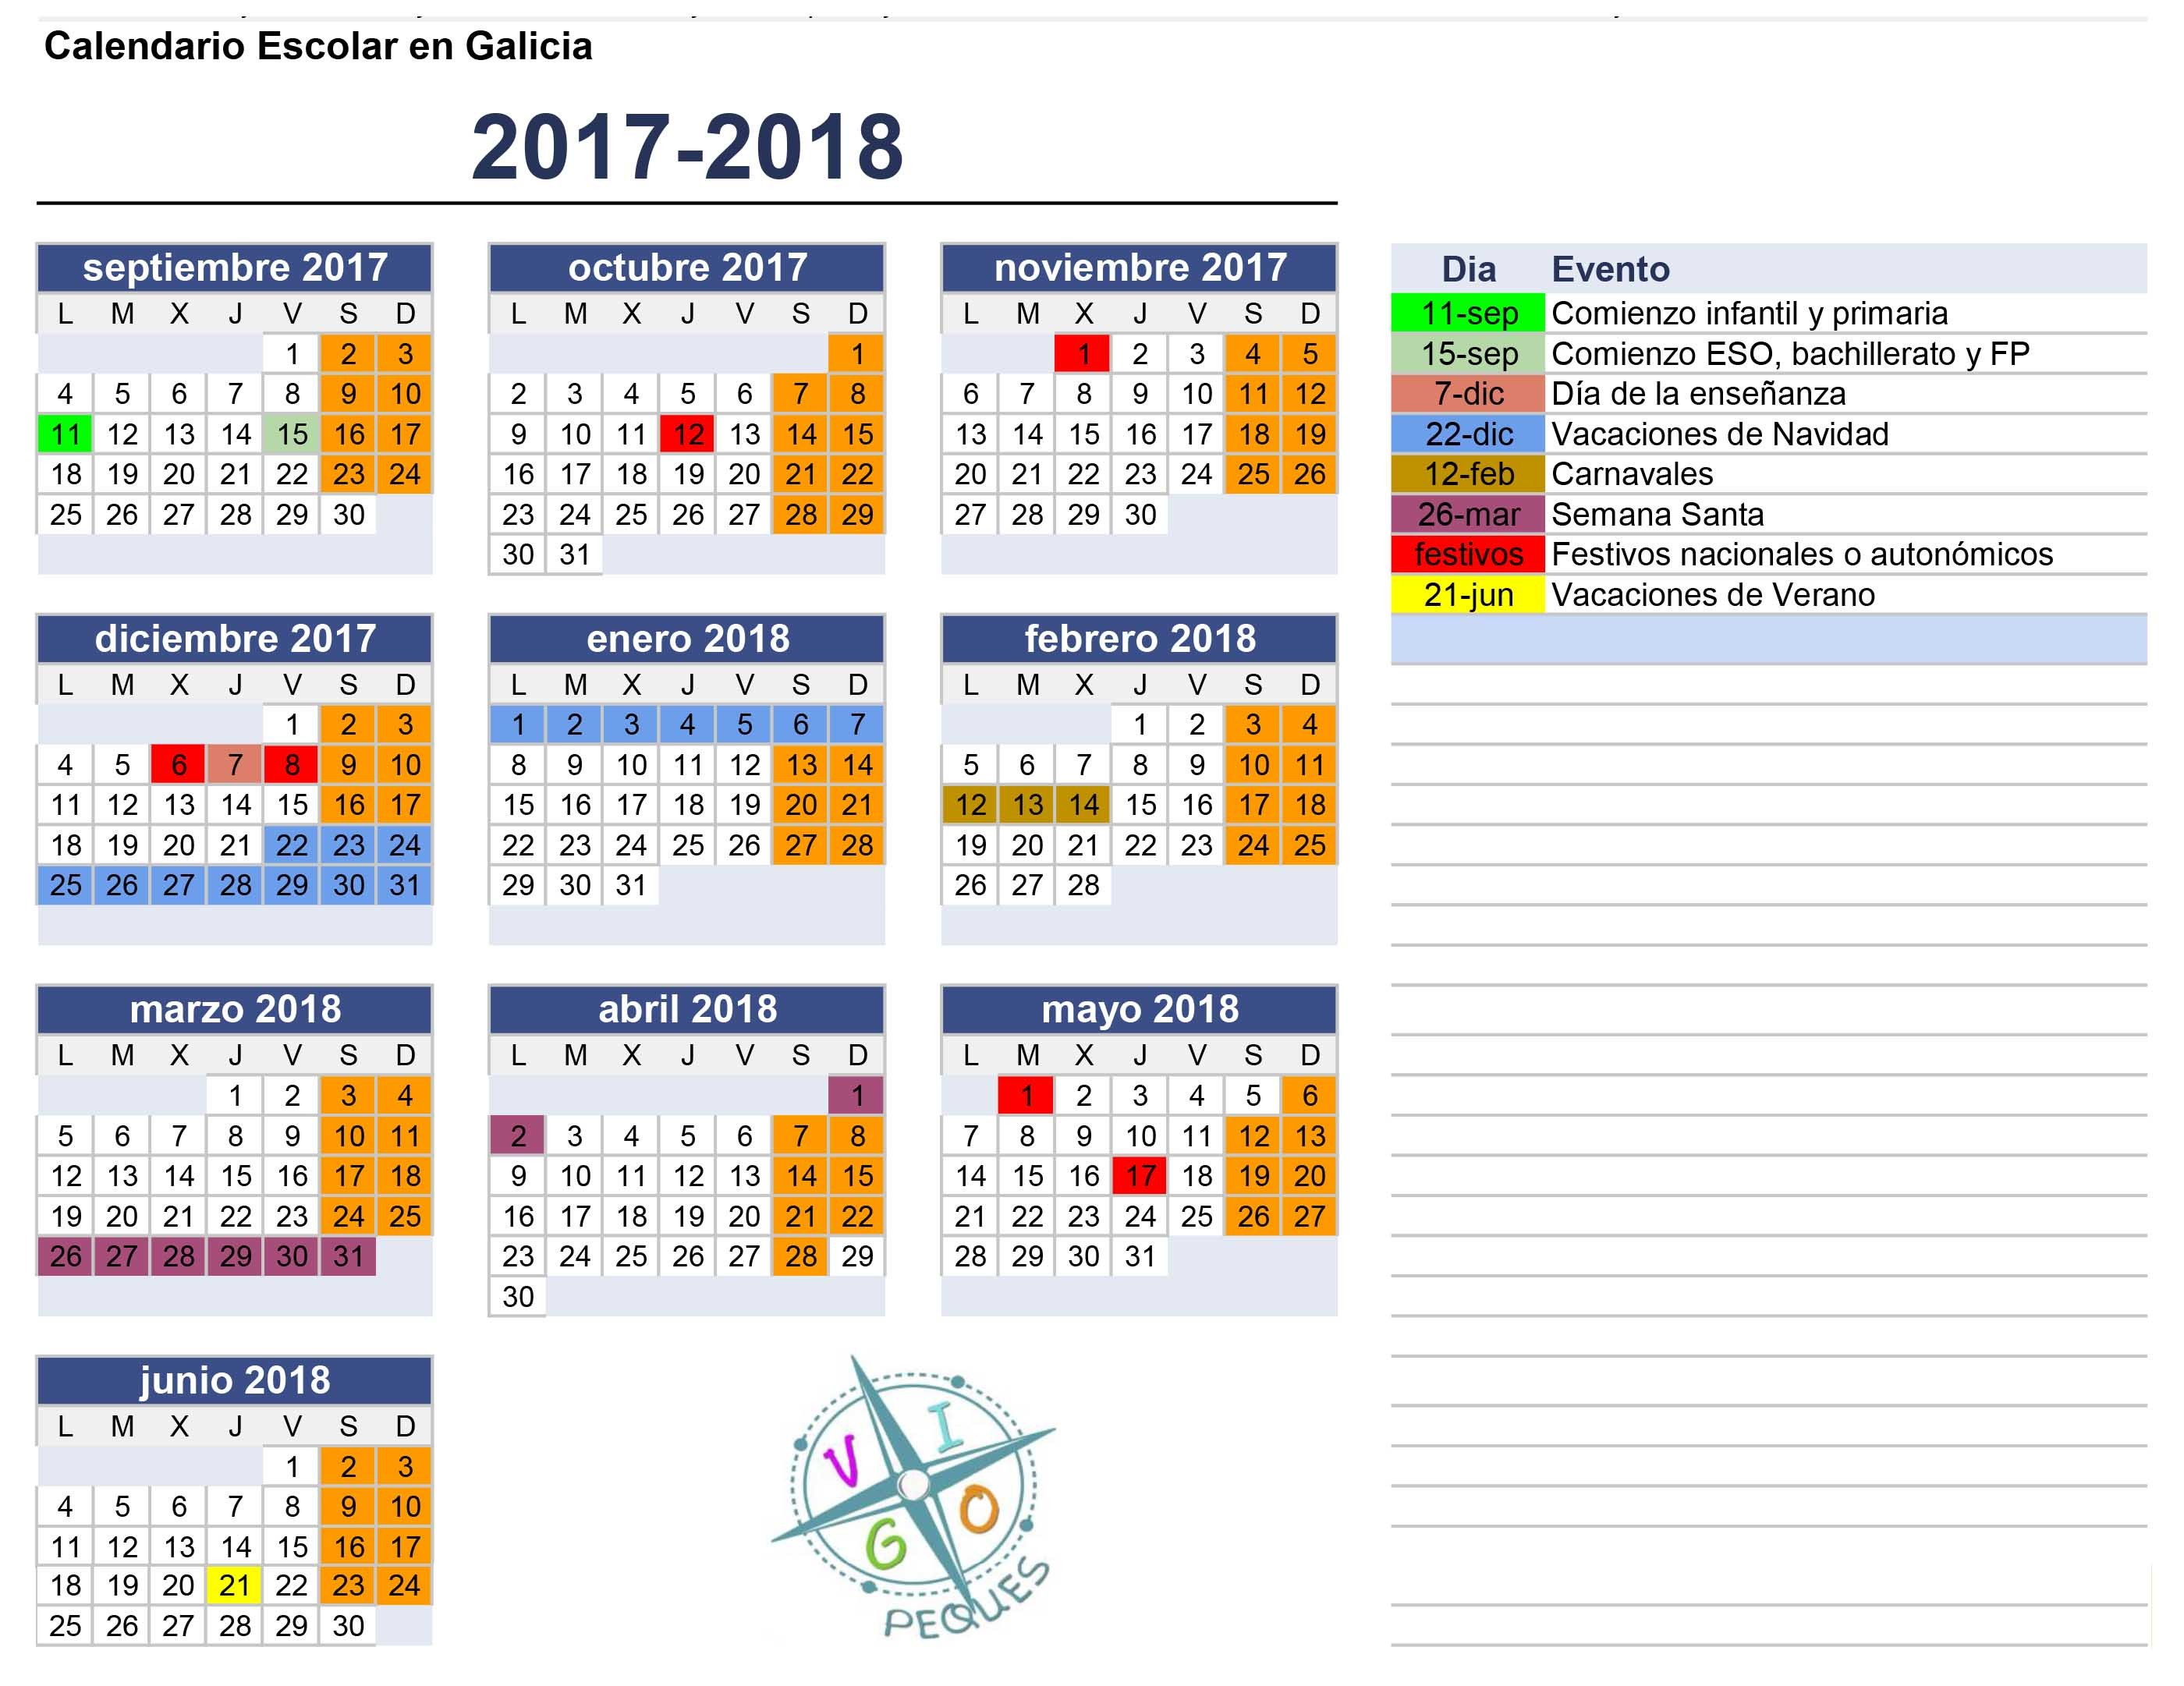 Calendario Febrero 2017 Chile Para Imprimir Más Recientes Calendario Septembero 2018 Para Imprimir